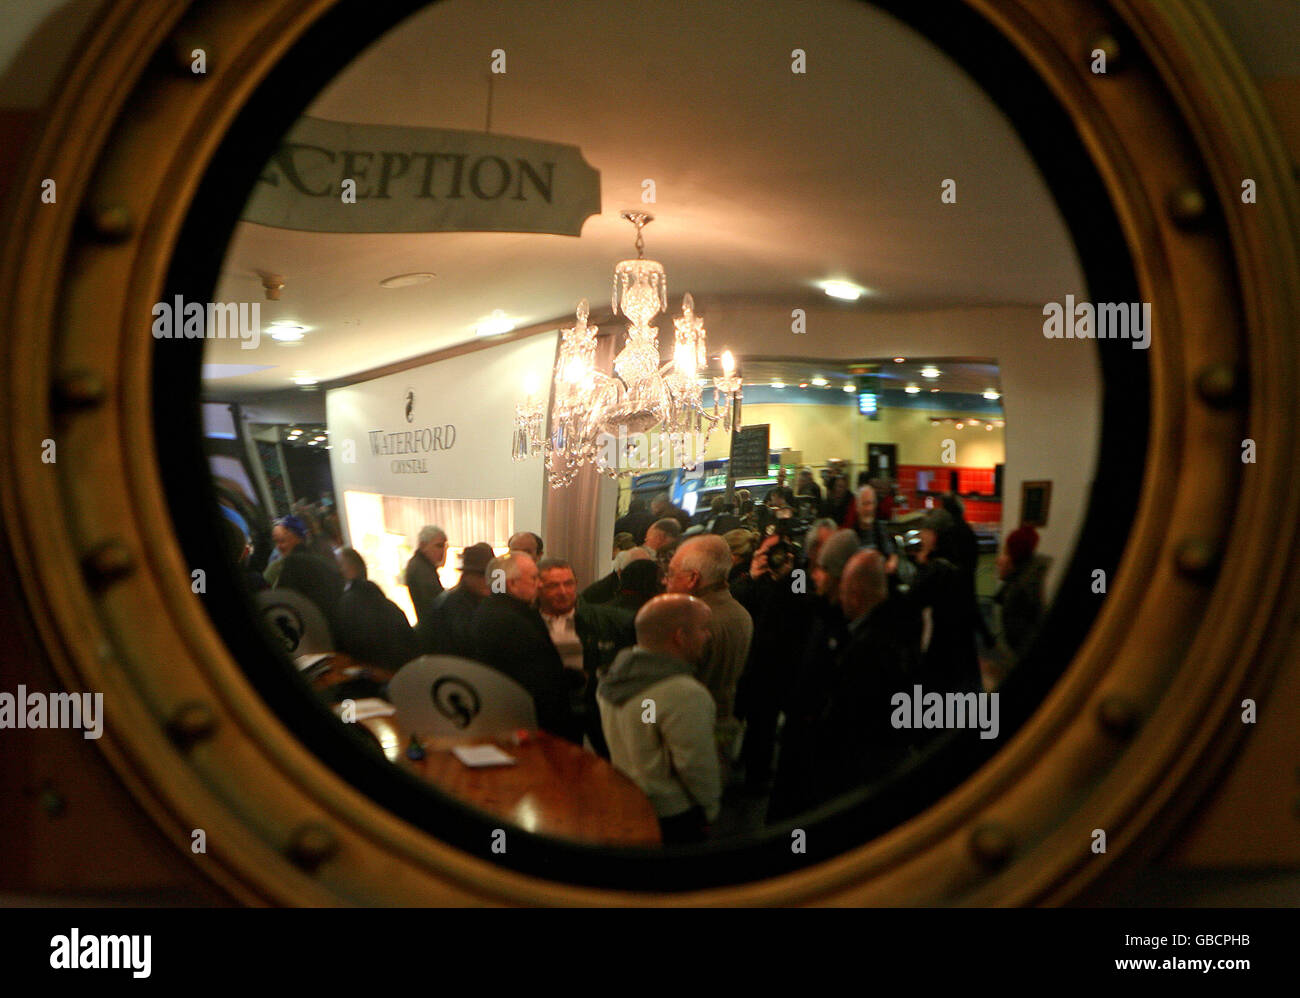 Workers occupy Waterford Crystal factory - Stock Image